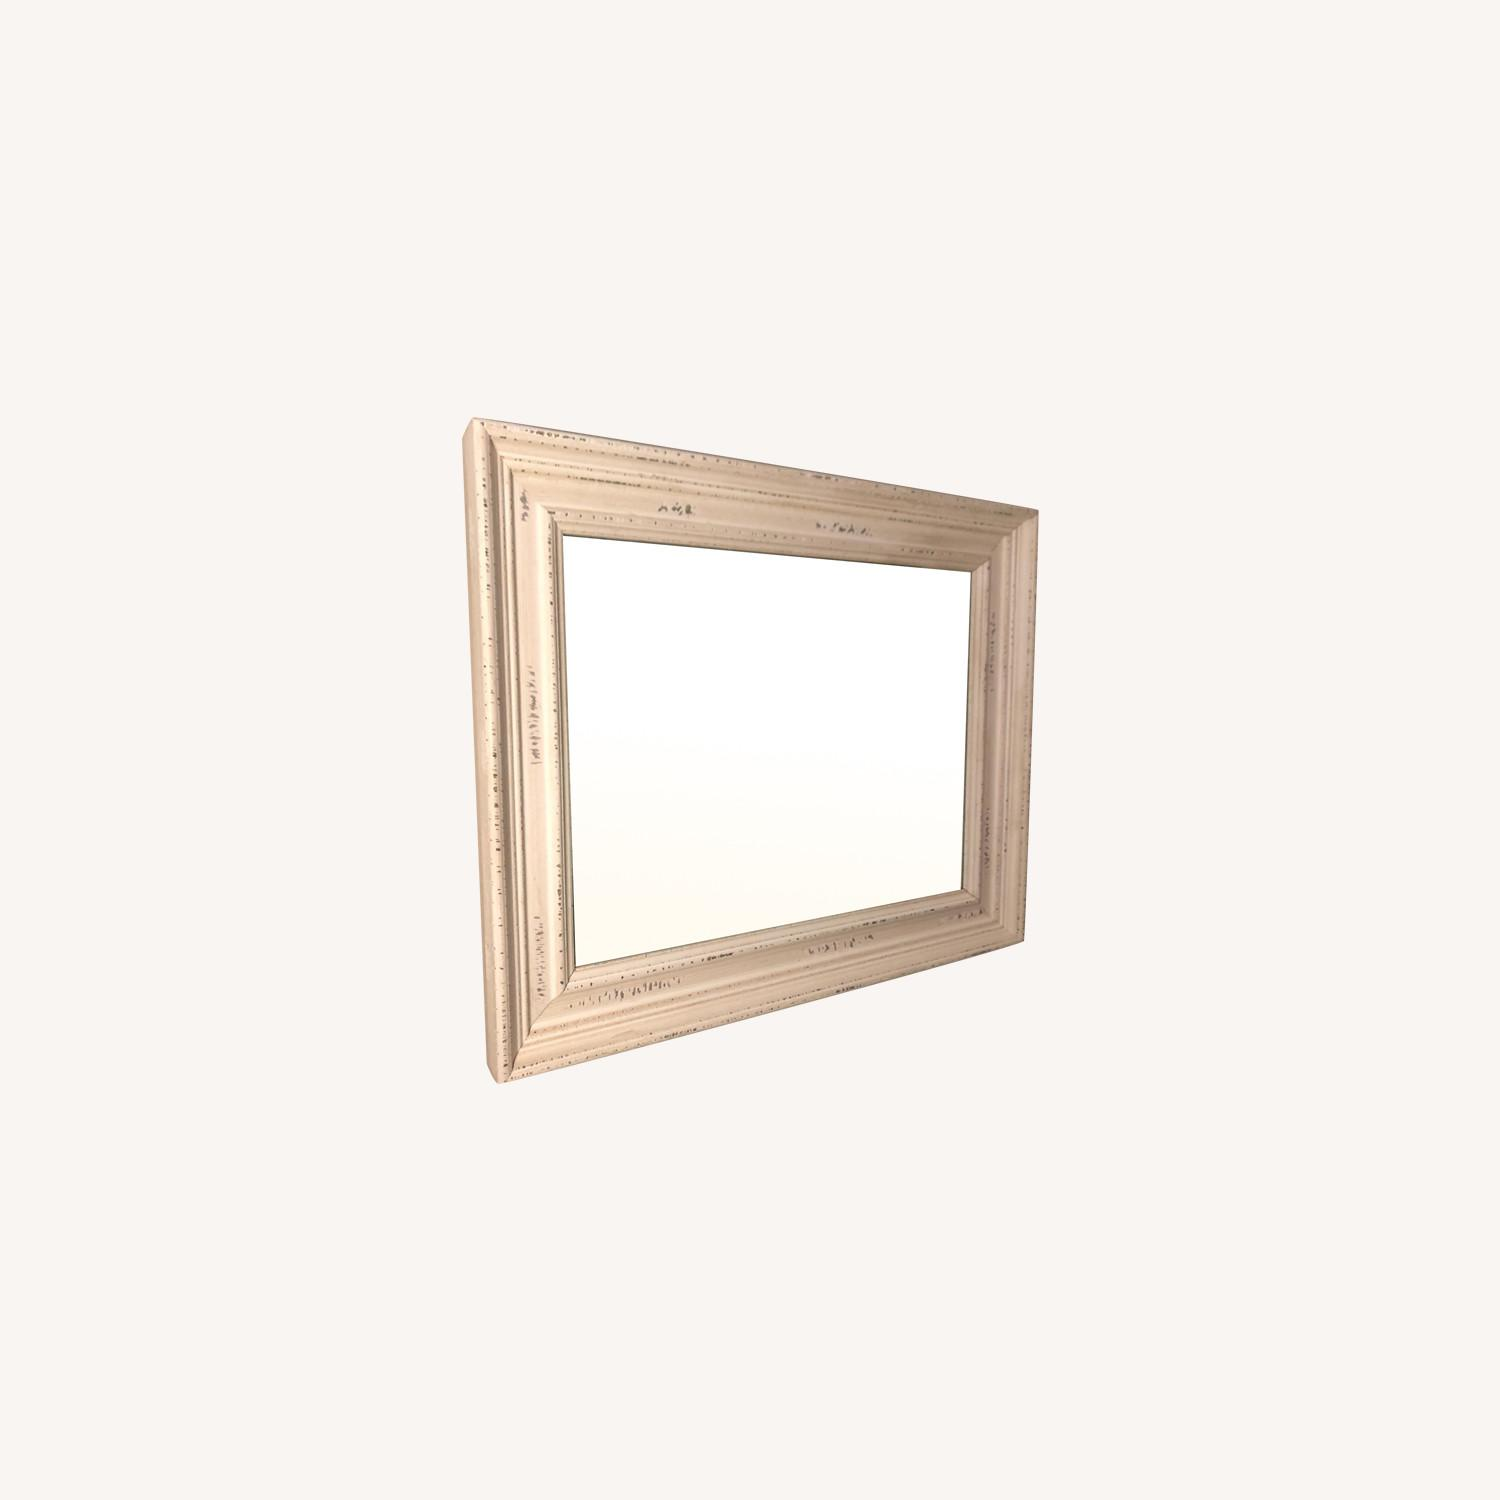 Wayfair White Speckled Wood Wall Mirror - image-0